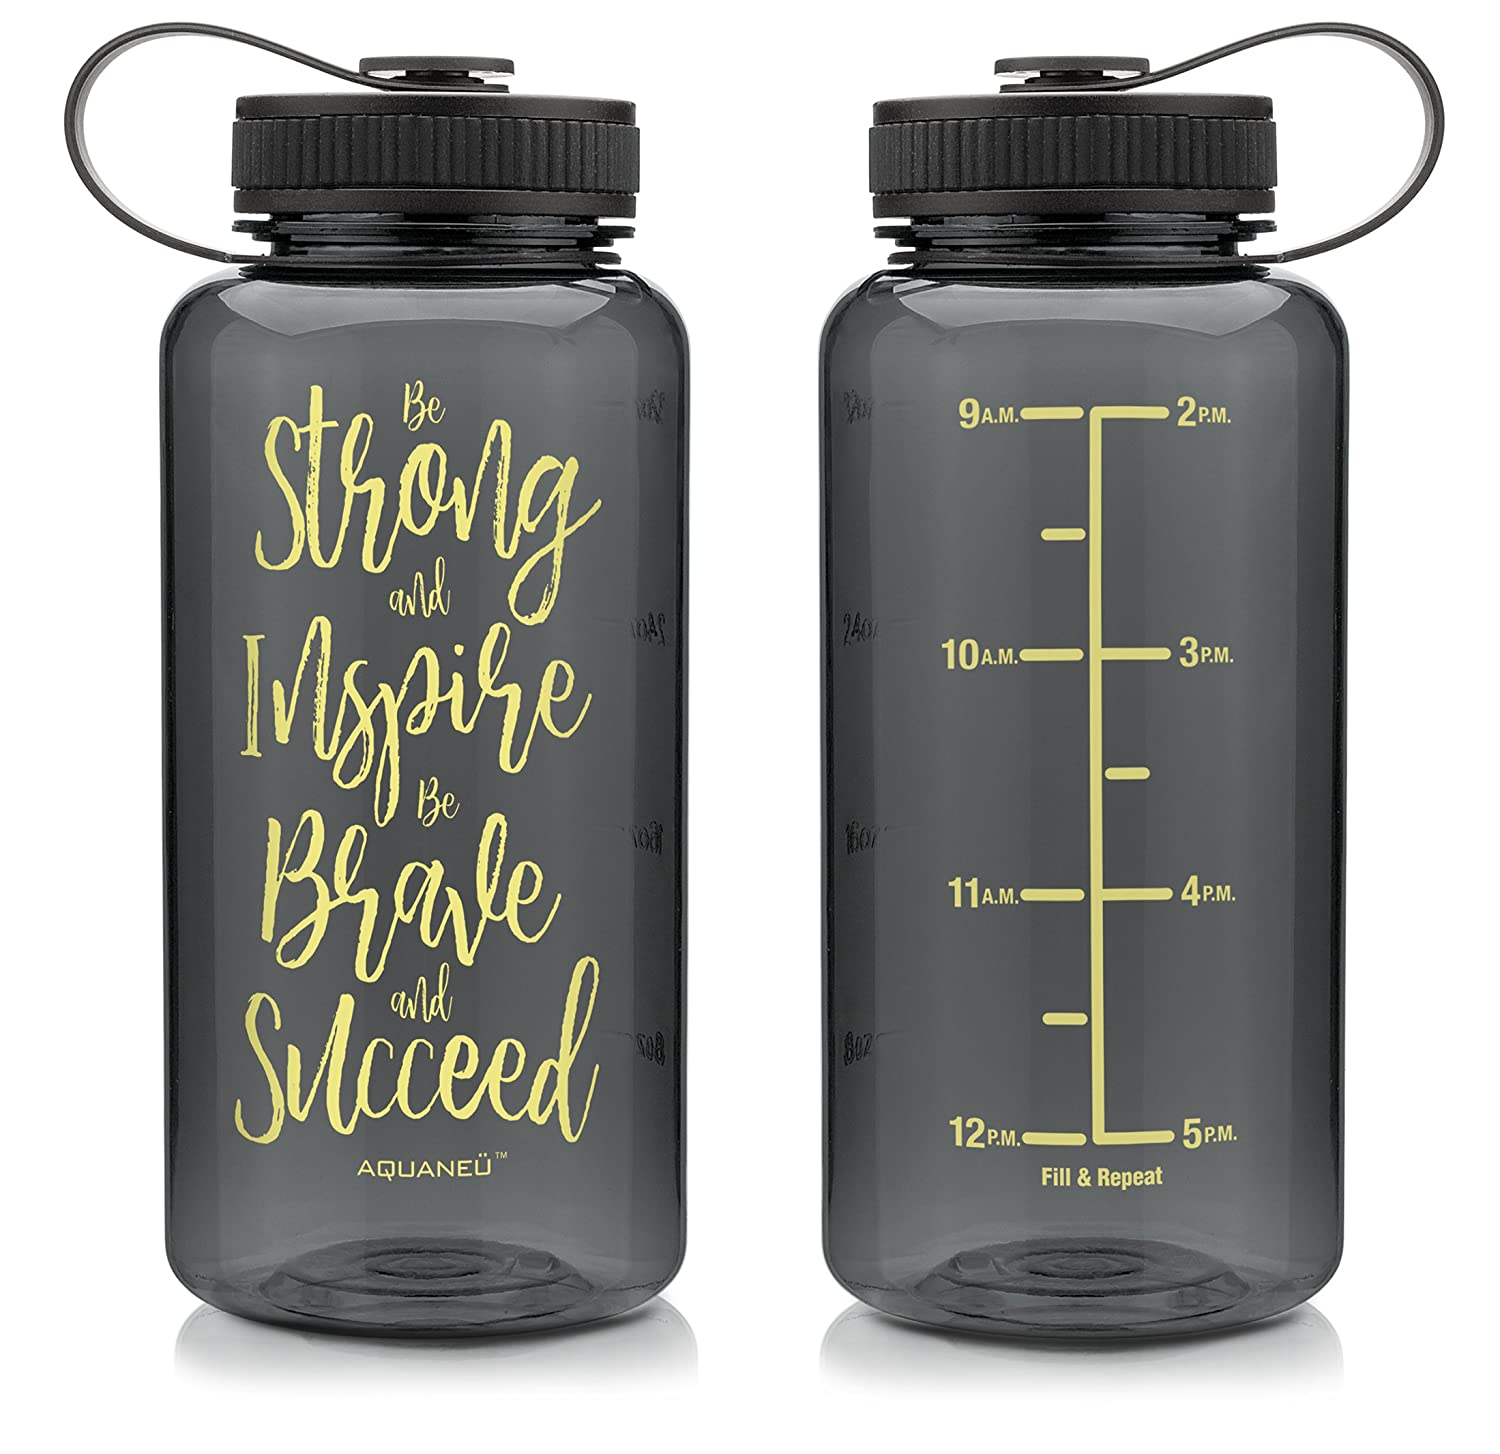 AQUANE/Ü 34oz Motivational Fitness Workout Sports Water Bottle with Time Marker Goal Marked Times For Measuring Your H2O Intake Measurements BPA Free Non-toxic Tritan 34oz